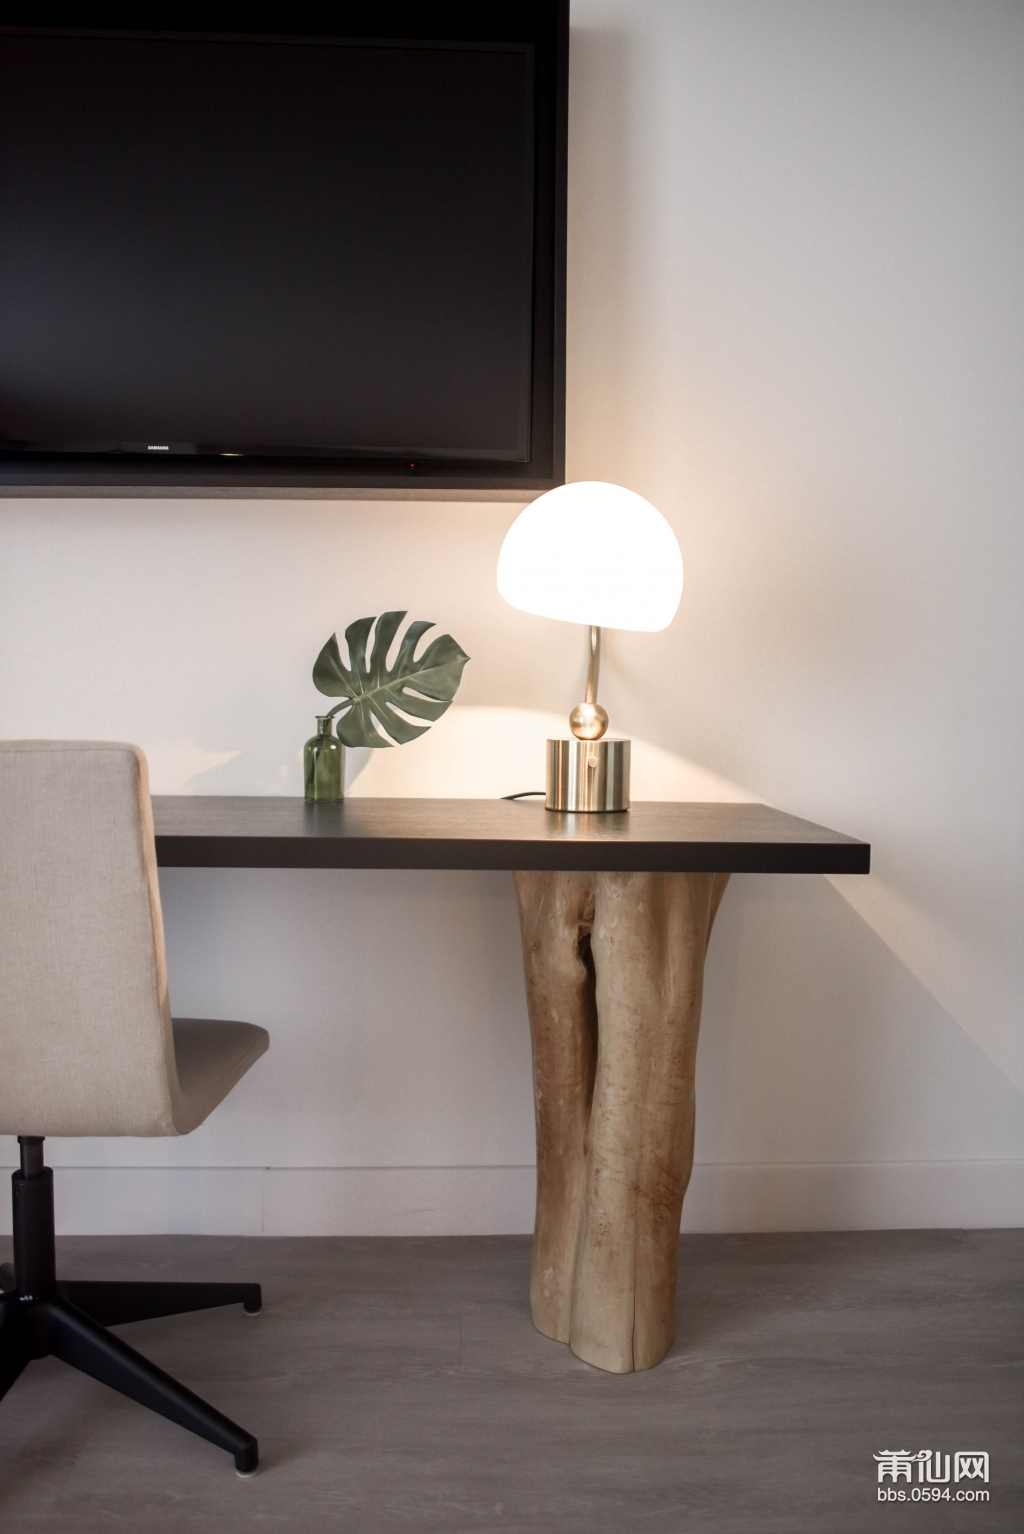 stainless-steel-base-white-shade-table-lamp-on-brown-wooden-1125137.jpg